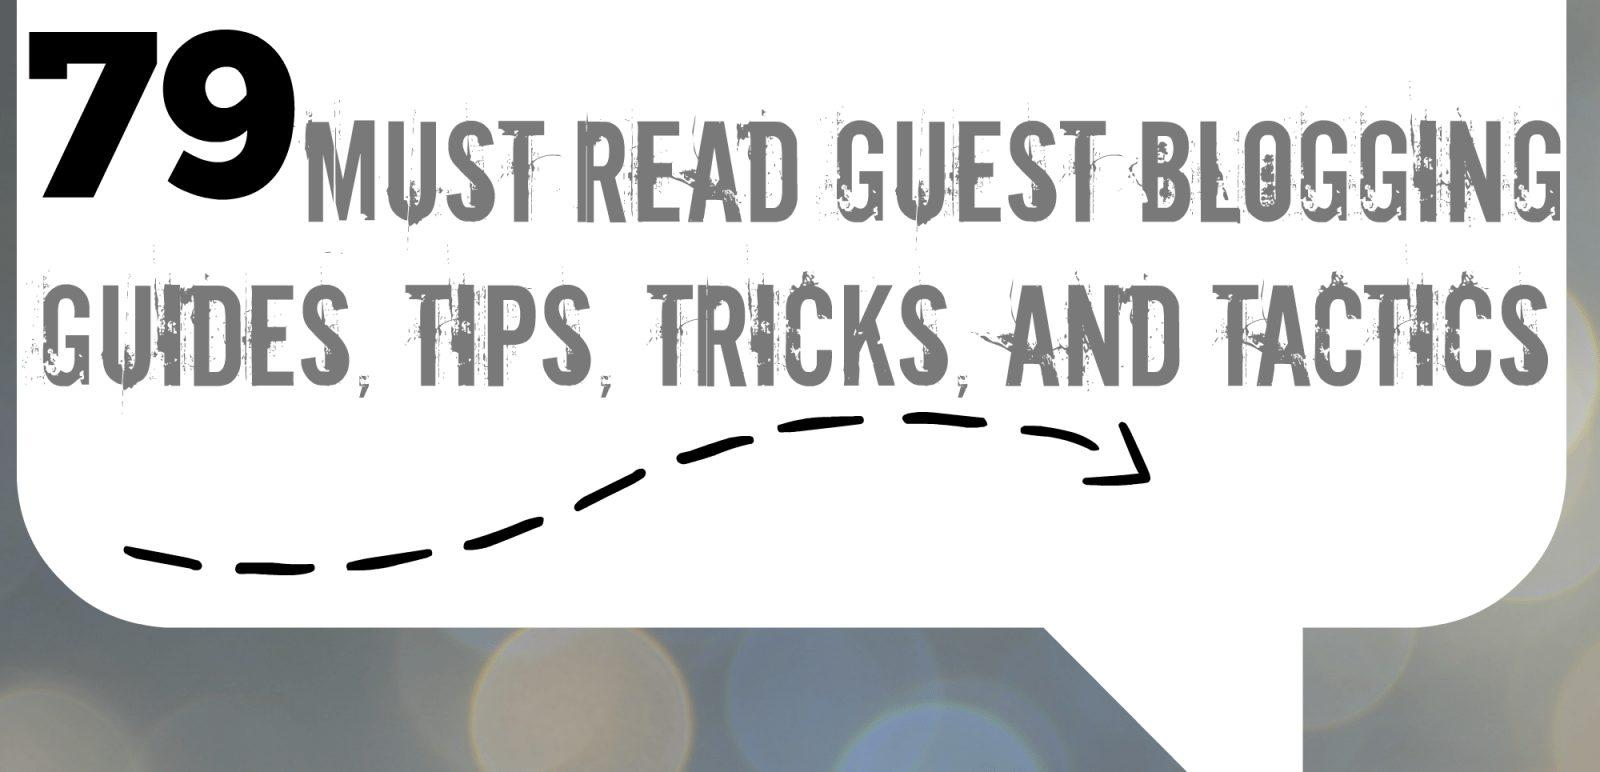 79 Must Read Guest Blogging Guides, Tips, Tricks, and Tactics